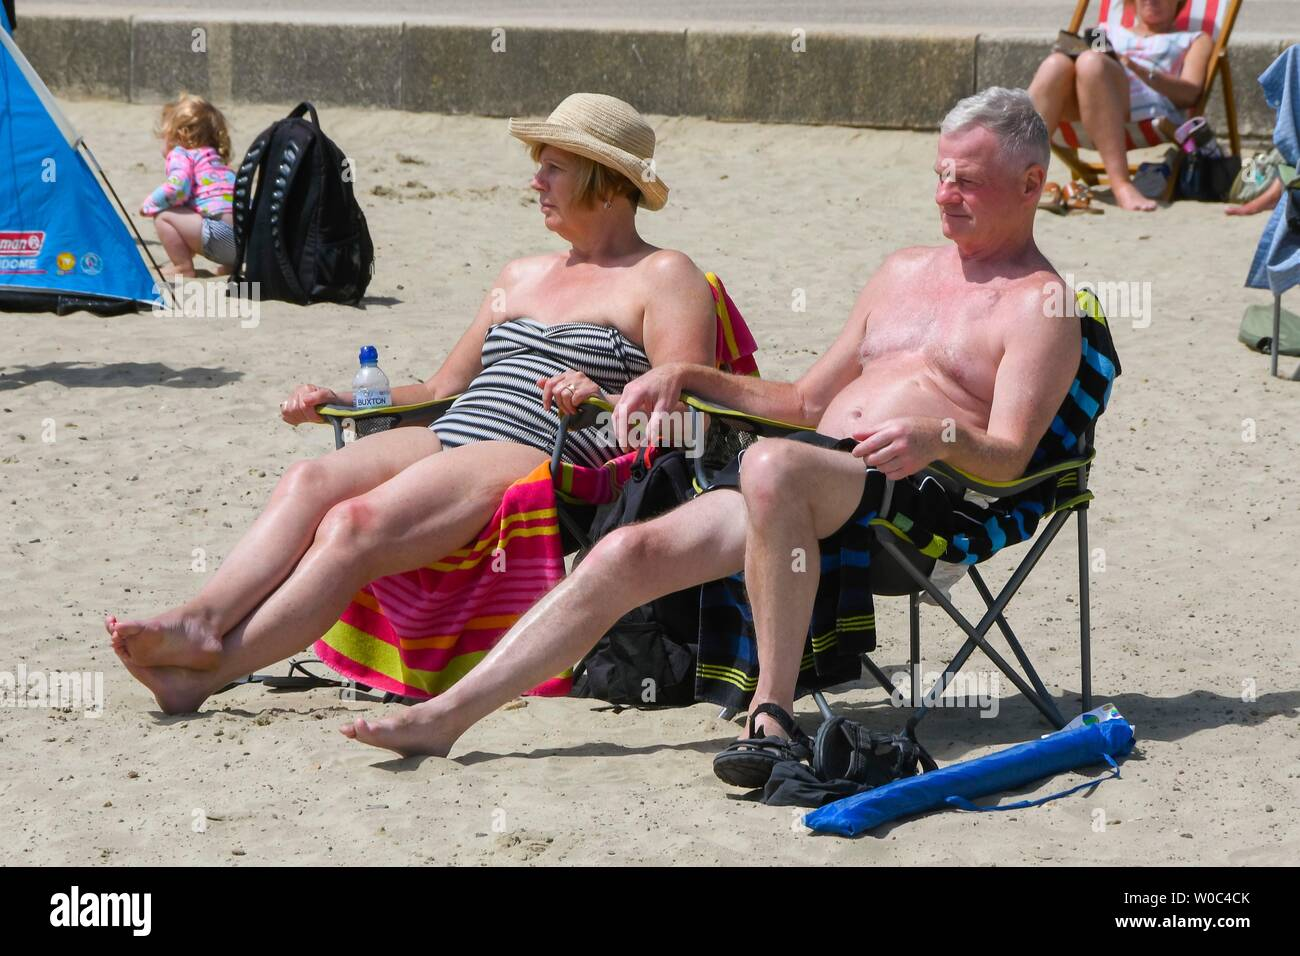 Lyme Regis, Dorset, UK.  27th June 2019. UK Weather.  Sunbathers on the beach at the seaside resort of Lyme Regis in Dorset enjoying a day of clear blue skies and scorching sunshine.   Picture Credit: Graham Hunt/Alamy Live News Stock Photo